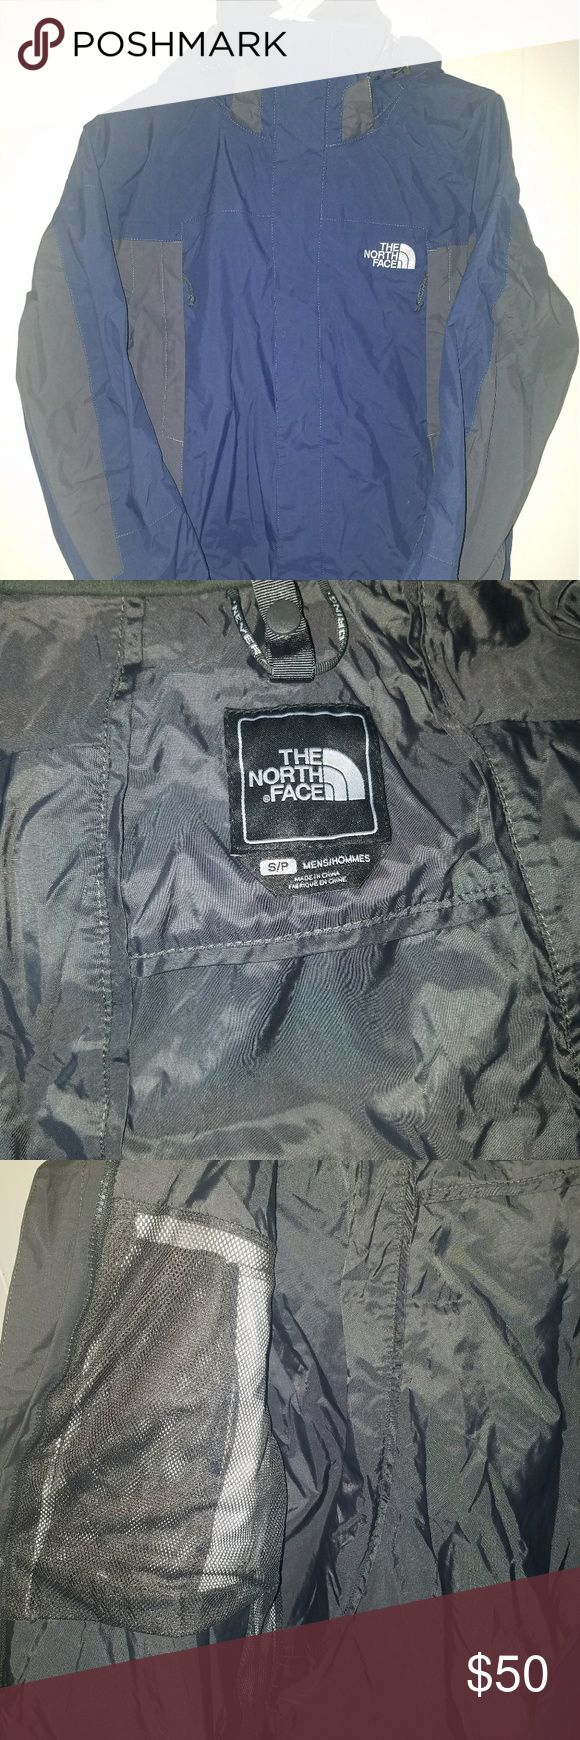 The North Face Condor Hyvent Triclimate Jacket Excellent used condition. Shell only. All the snaps pulls, zippers and velcro attachments are in working order. Hood is removable. Contains a set of zippered pockets on each side of the front. The North Face Jackets & Coats